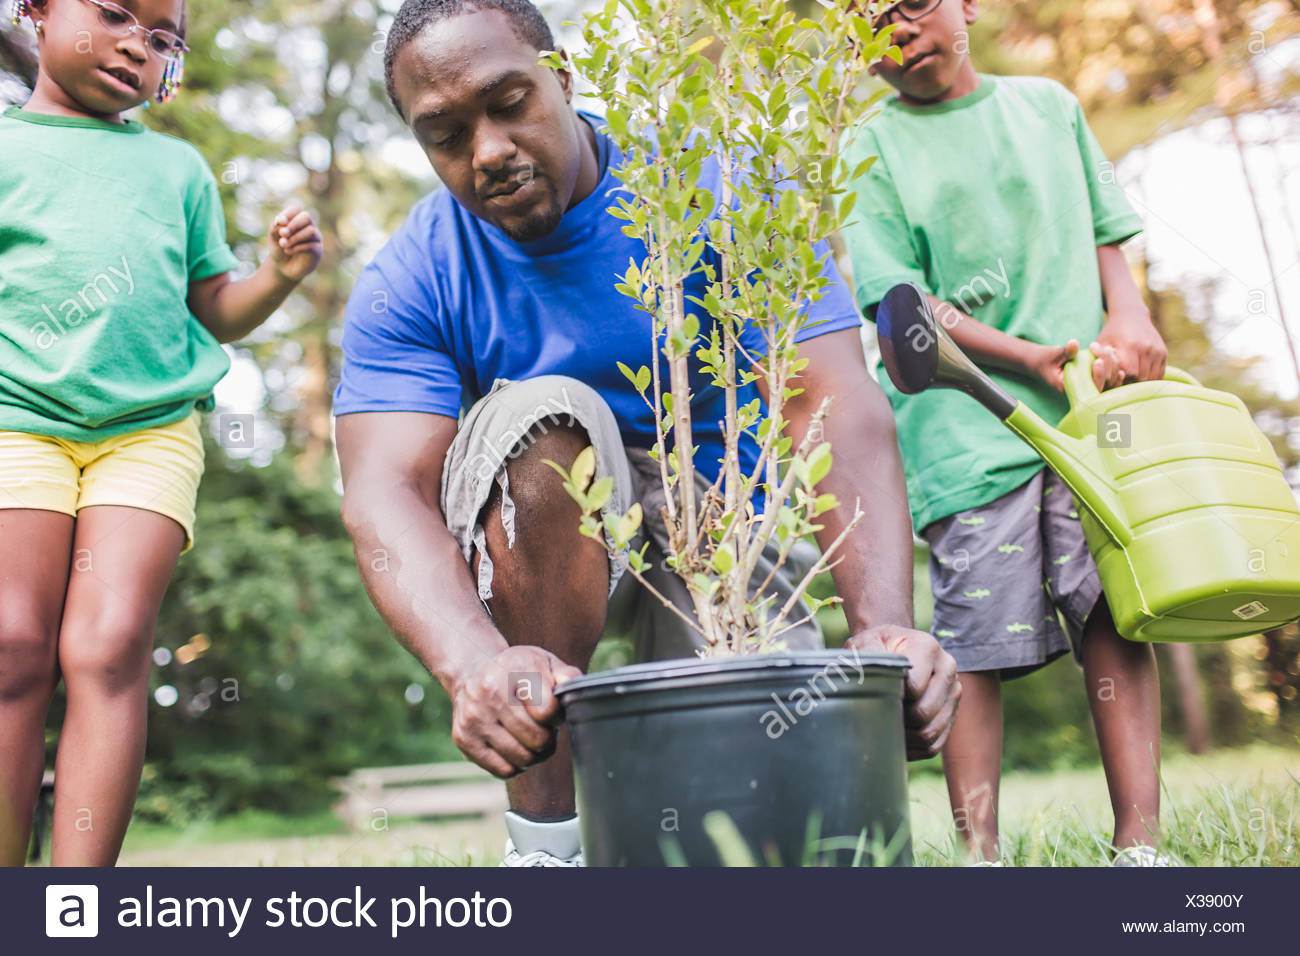 Father tending plants with son and daughter at parkland eco camp - Stock Image